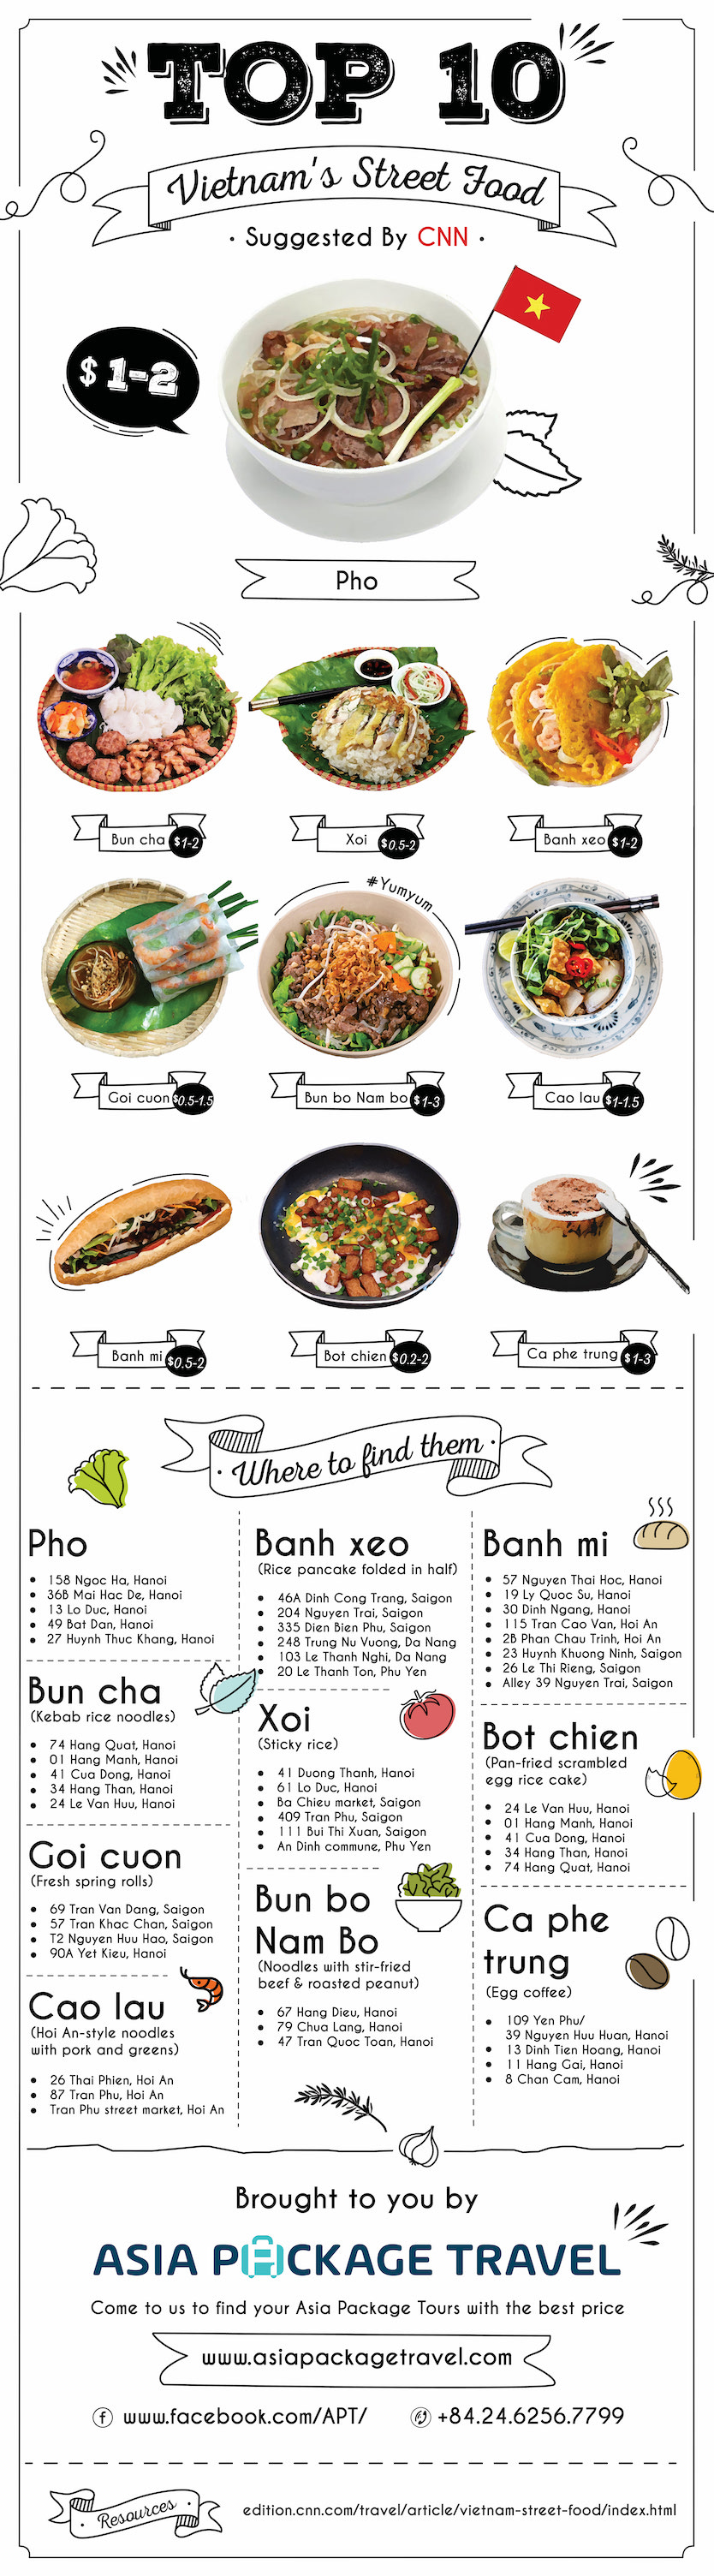 You can easily find places throughout Vietnam to try the best dishes